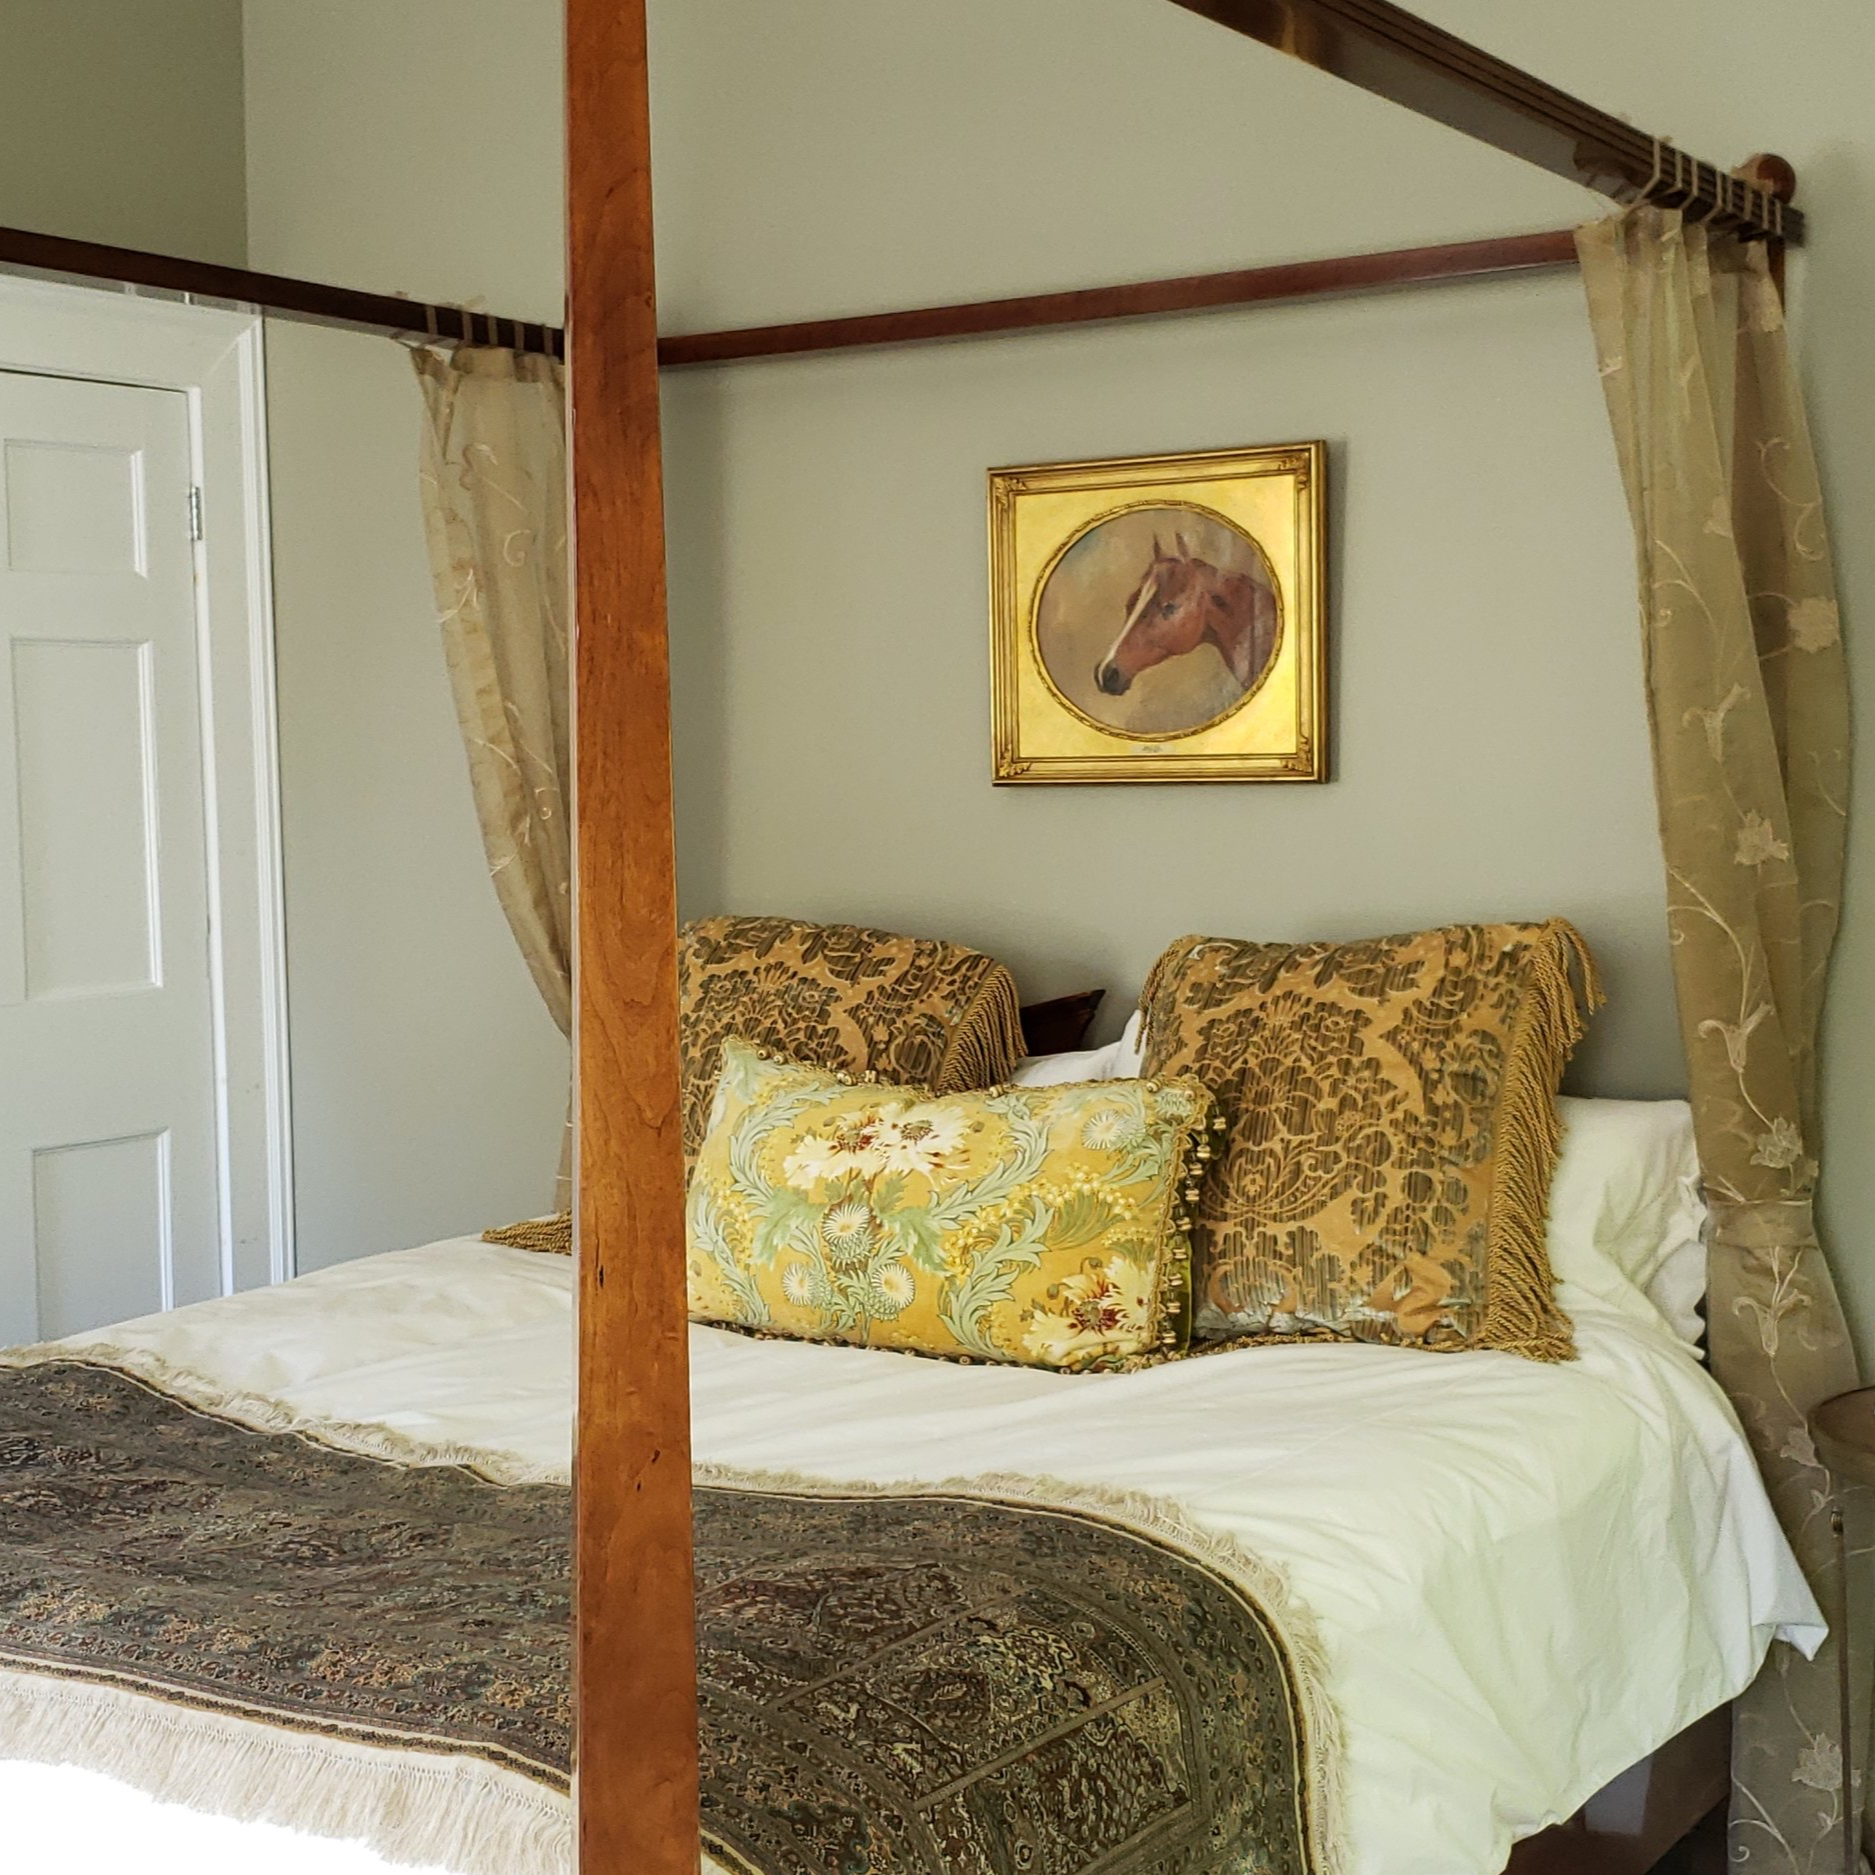 The Empire Suite - King Therion Four Poster Bed • Fireplace • Walk-in Closet • Private bath with glass paneled showerLEARN MORE